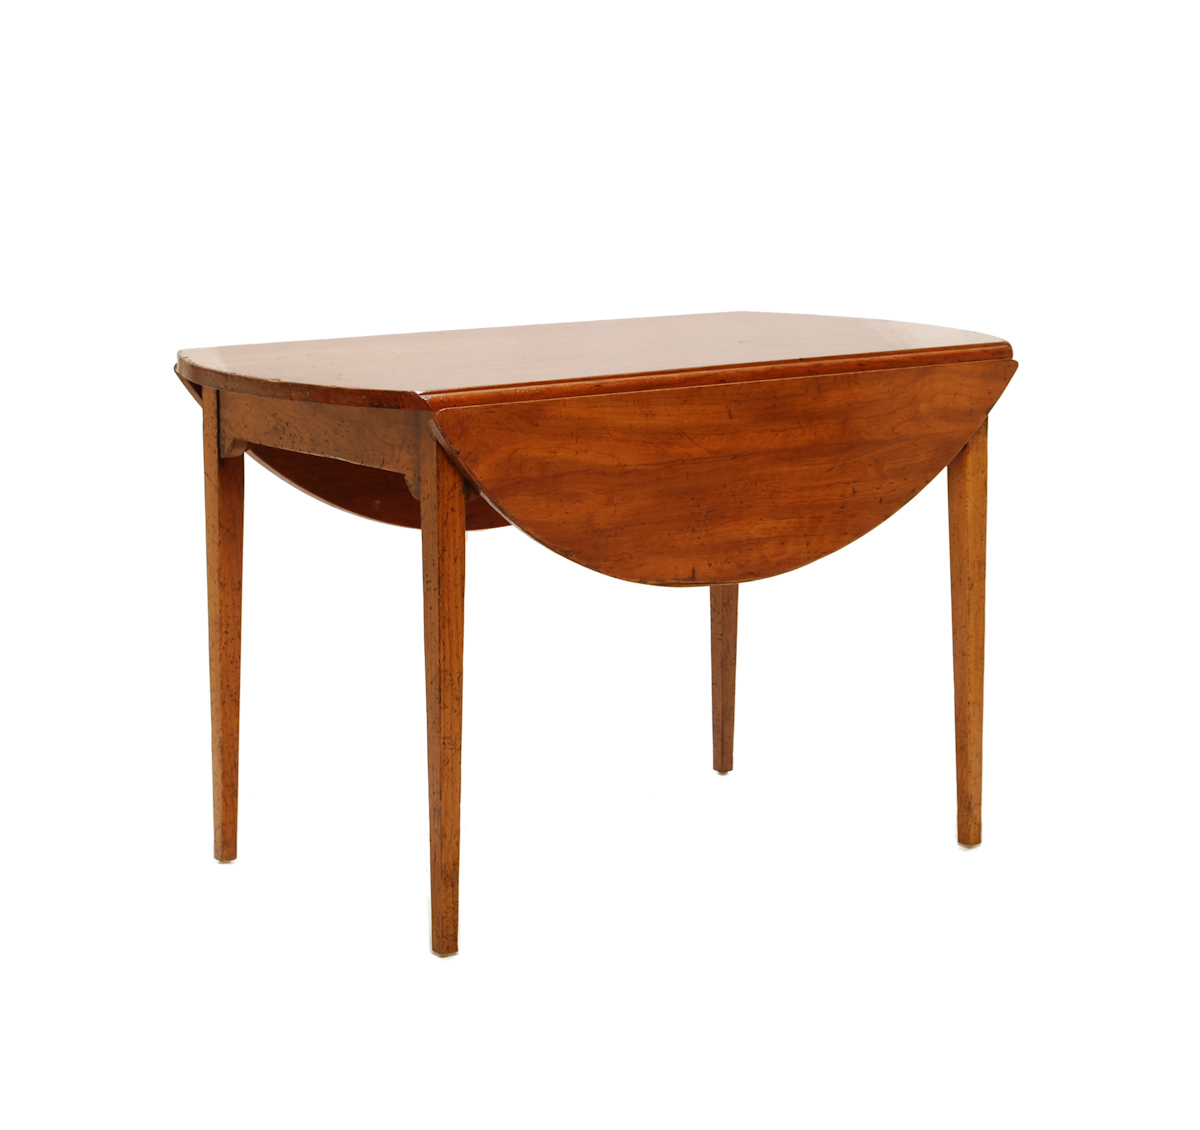 Drop leaf dining room table kurt 216 stervig drop leaf for Dining room tables drop leaf